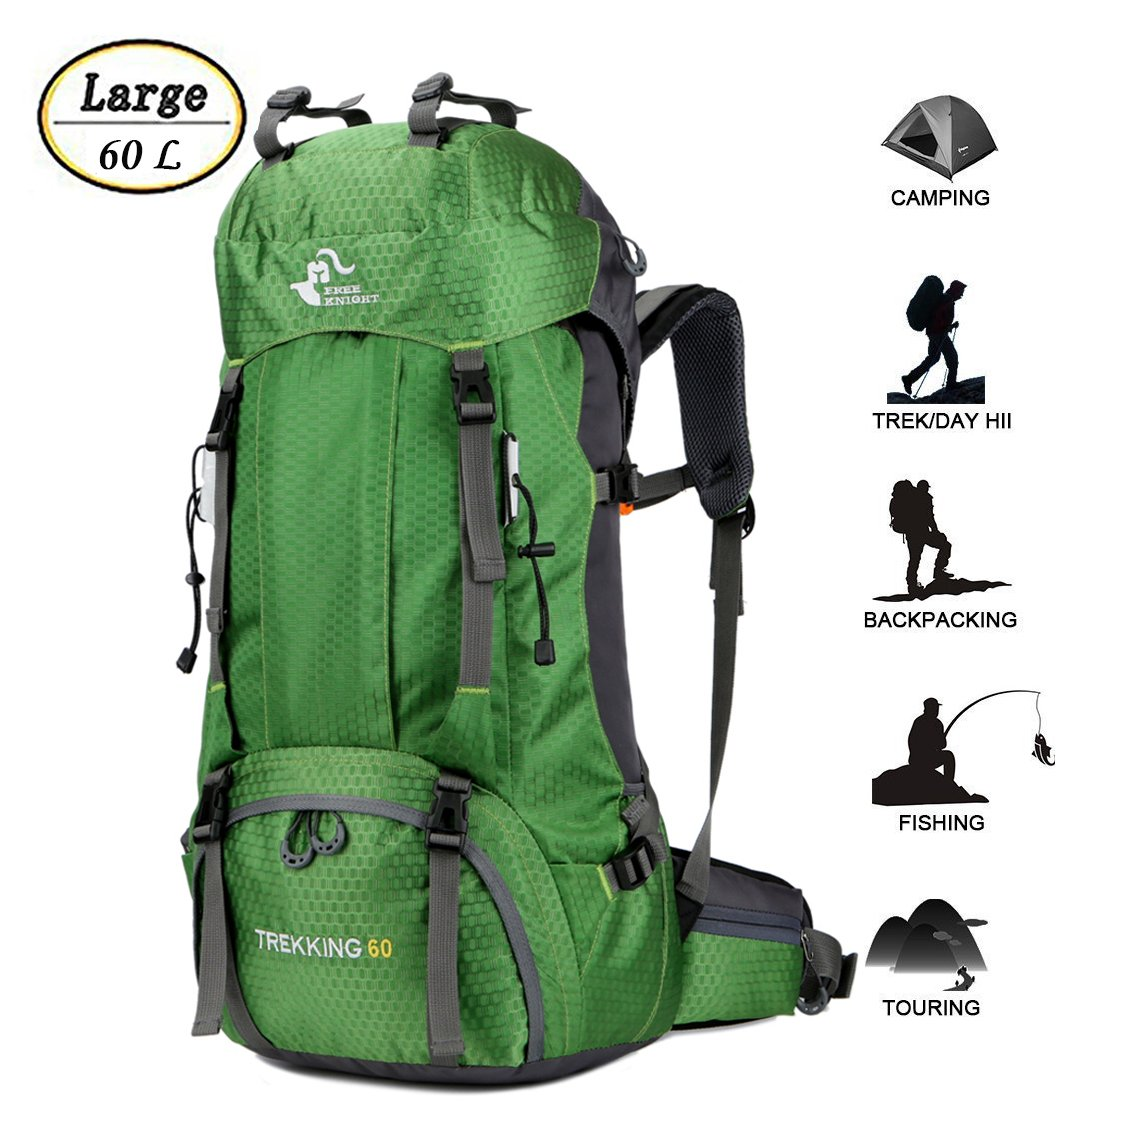 60L Waterproof Ultra Lightweight Hiking Backpack with Rain Cover ... b4ad963aeb402